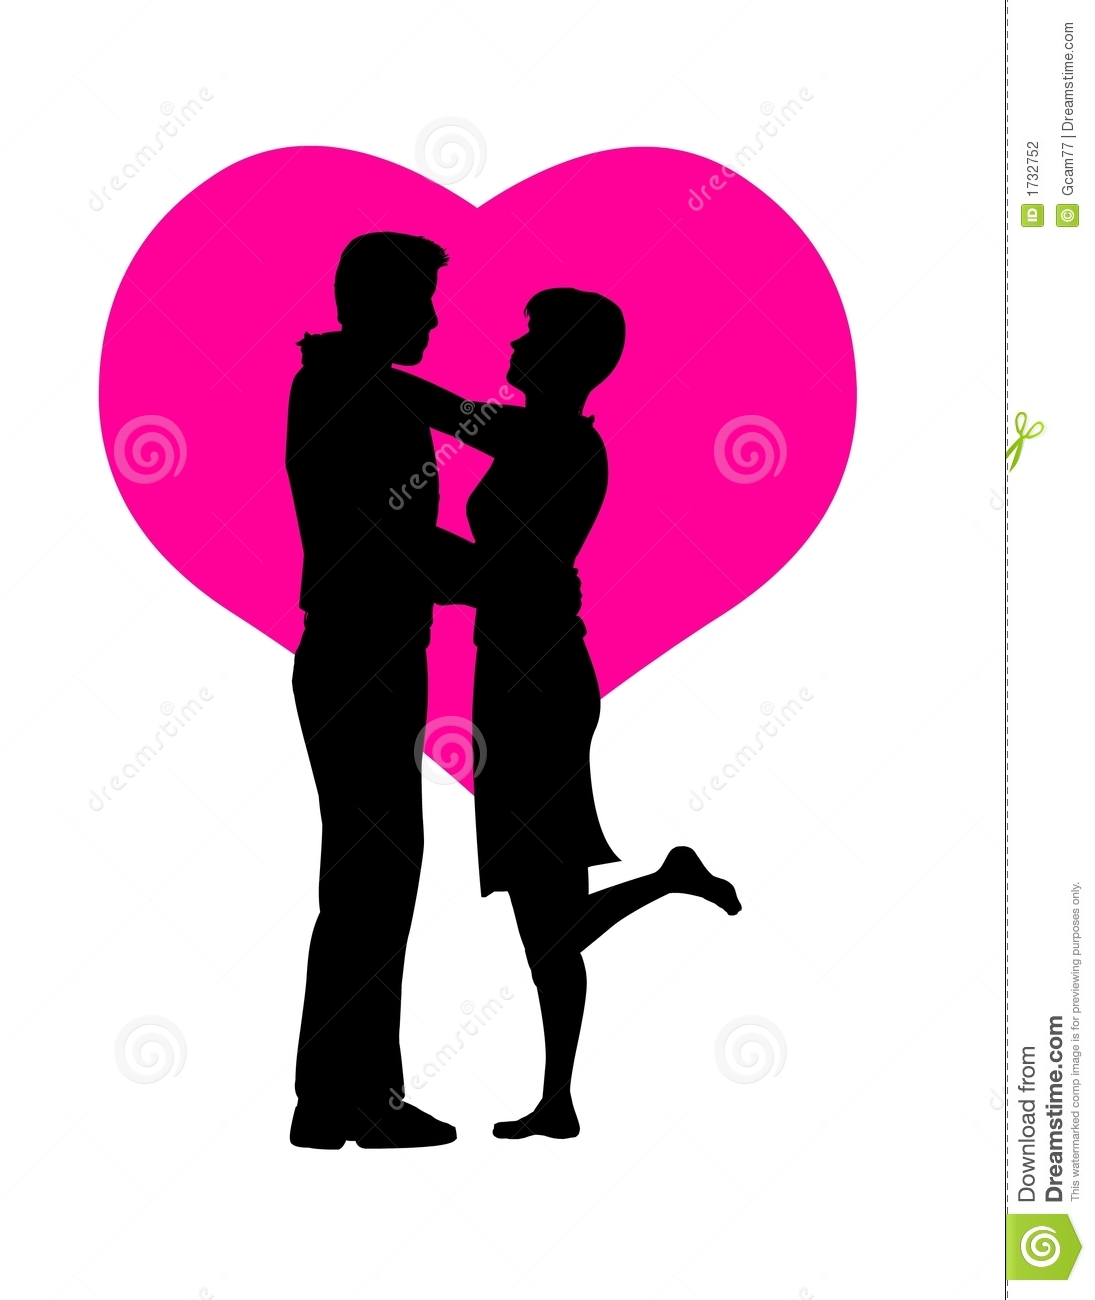 Romantic Couple Stock Photography Image -Romantic Couple Stock Photography Image 1732752-18